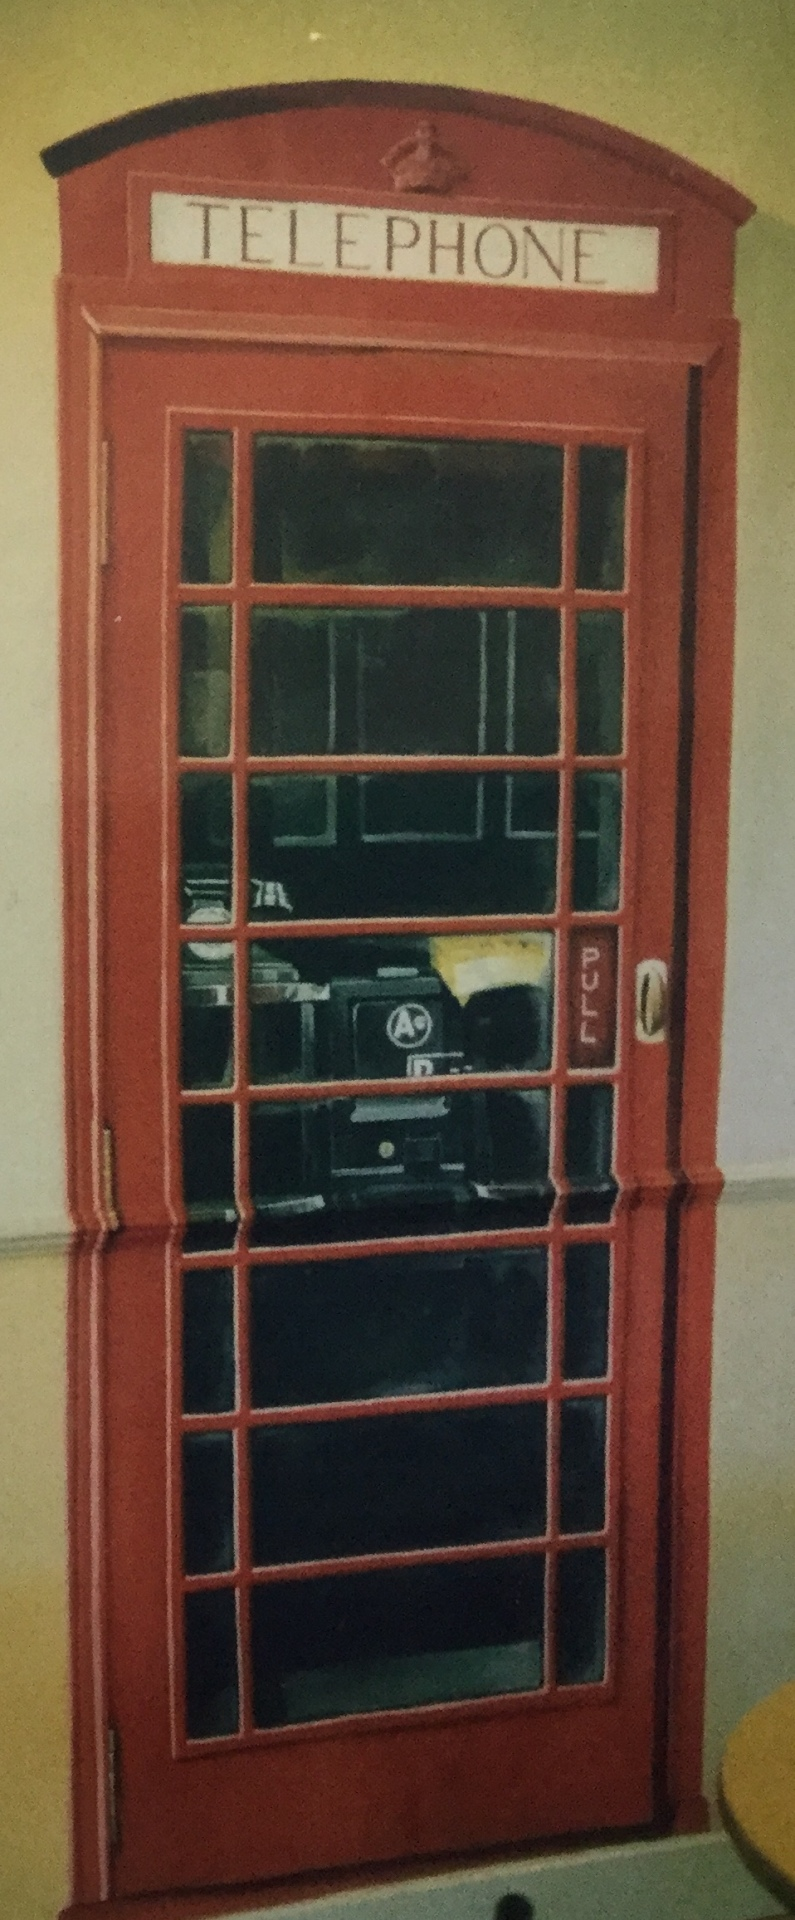 1950's style Telephone Kiosk, painted in the Cafe at Leeming Motel